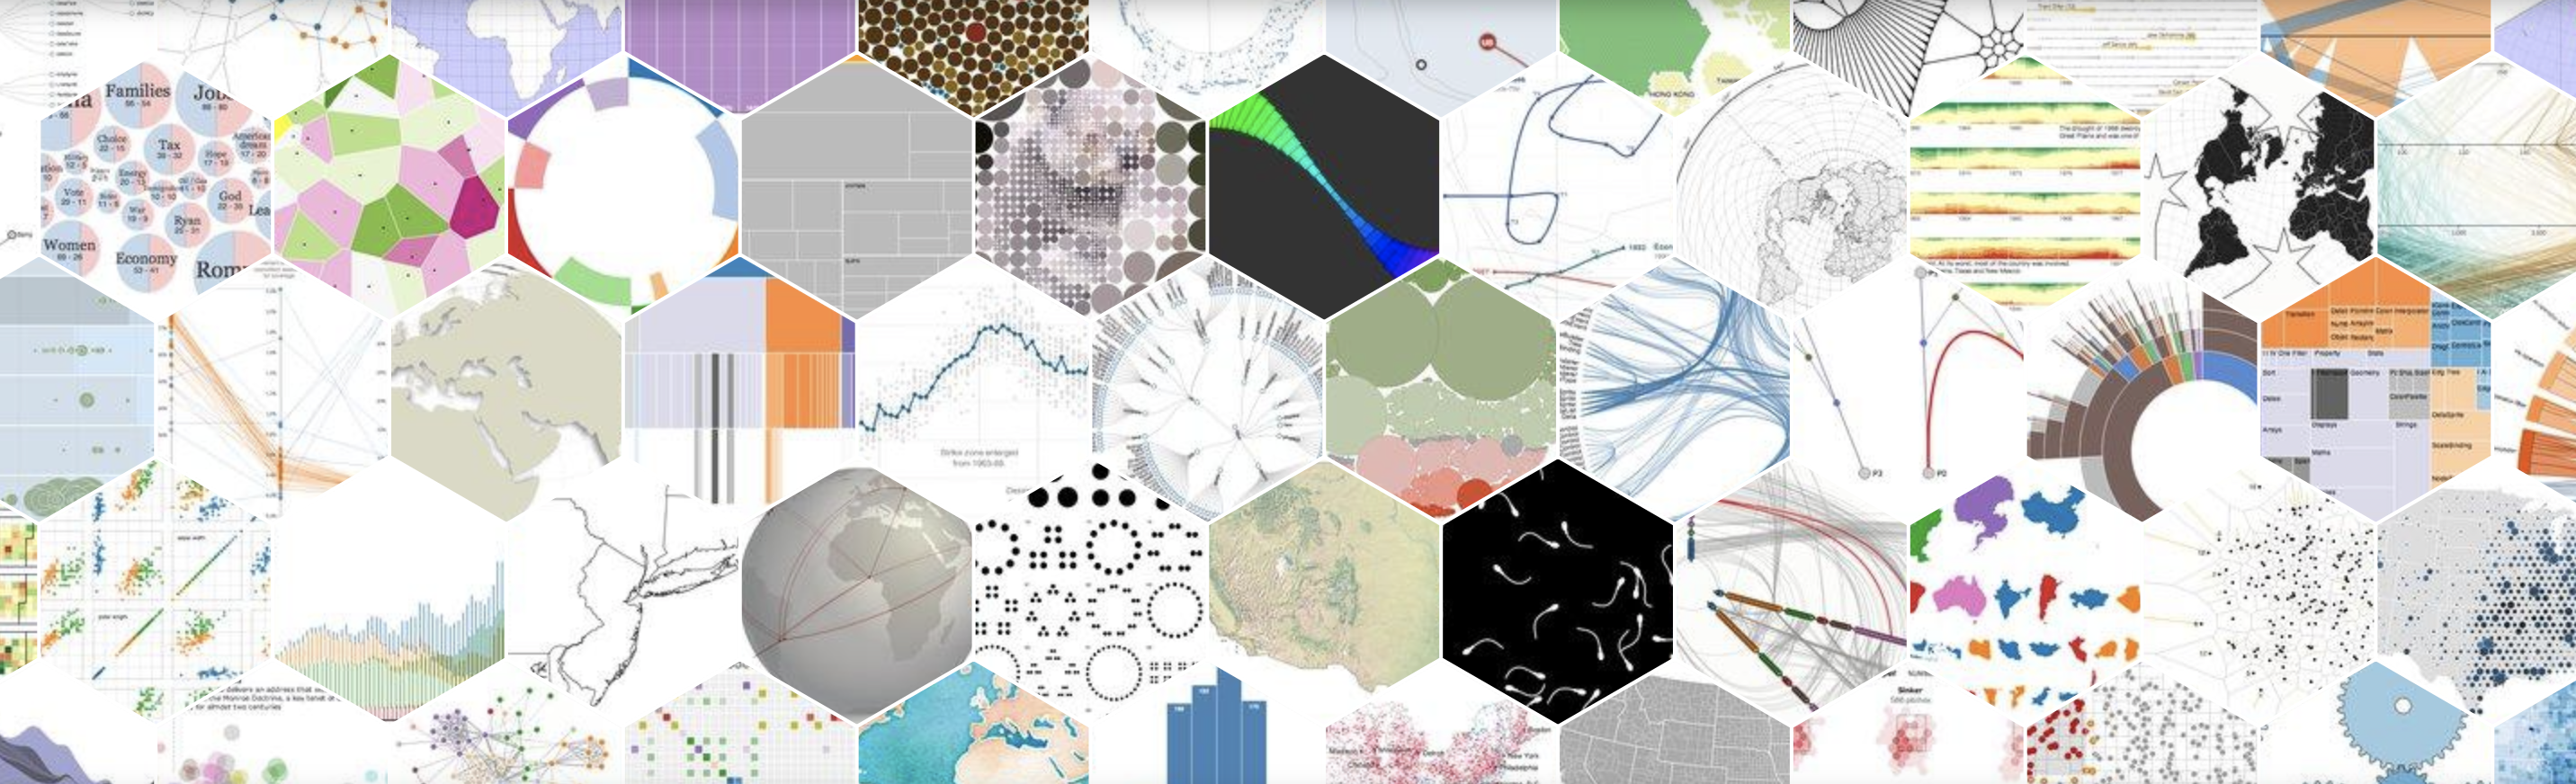 A hexagonal mosaic of example data visualizations rendered with D3.js